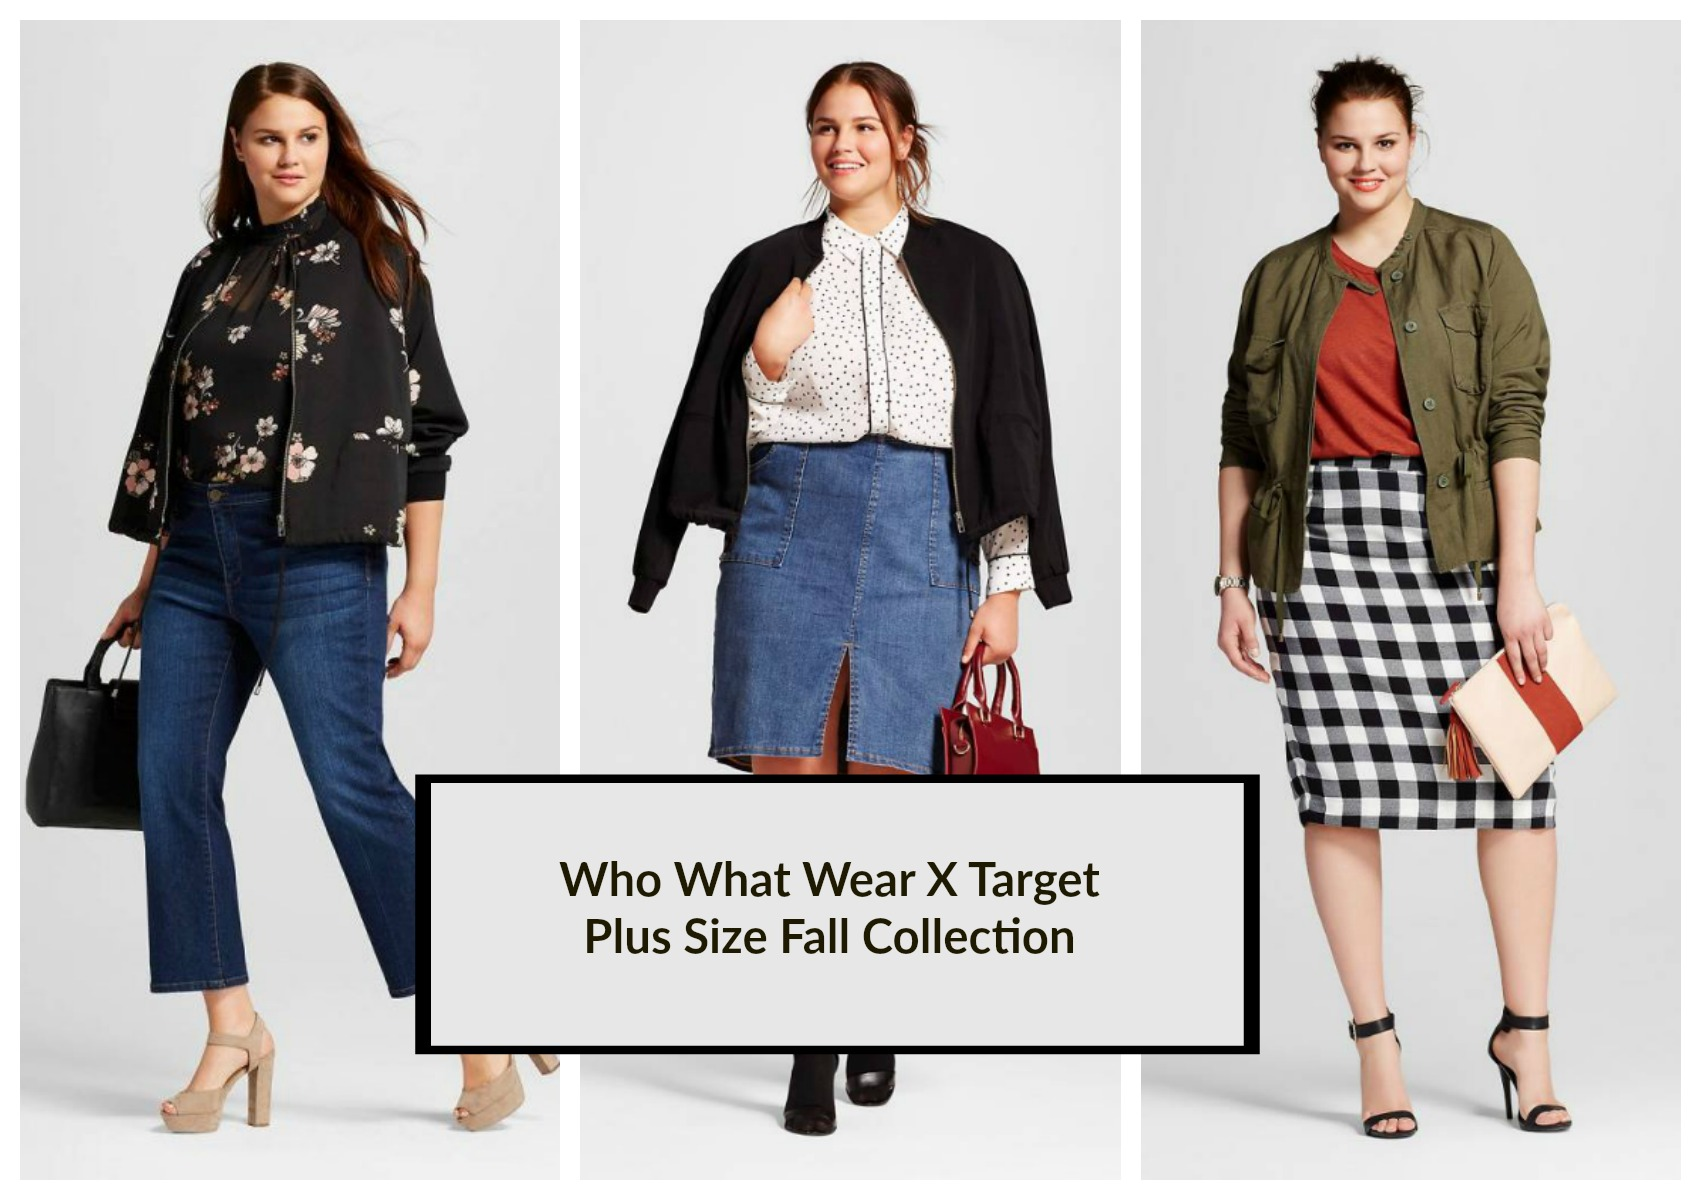 fbc25167beb Shop The Who What Wear X Target Plus Size Fall Collection